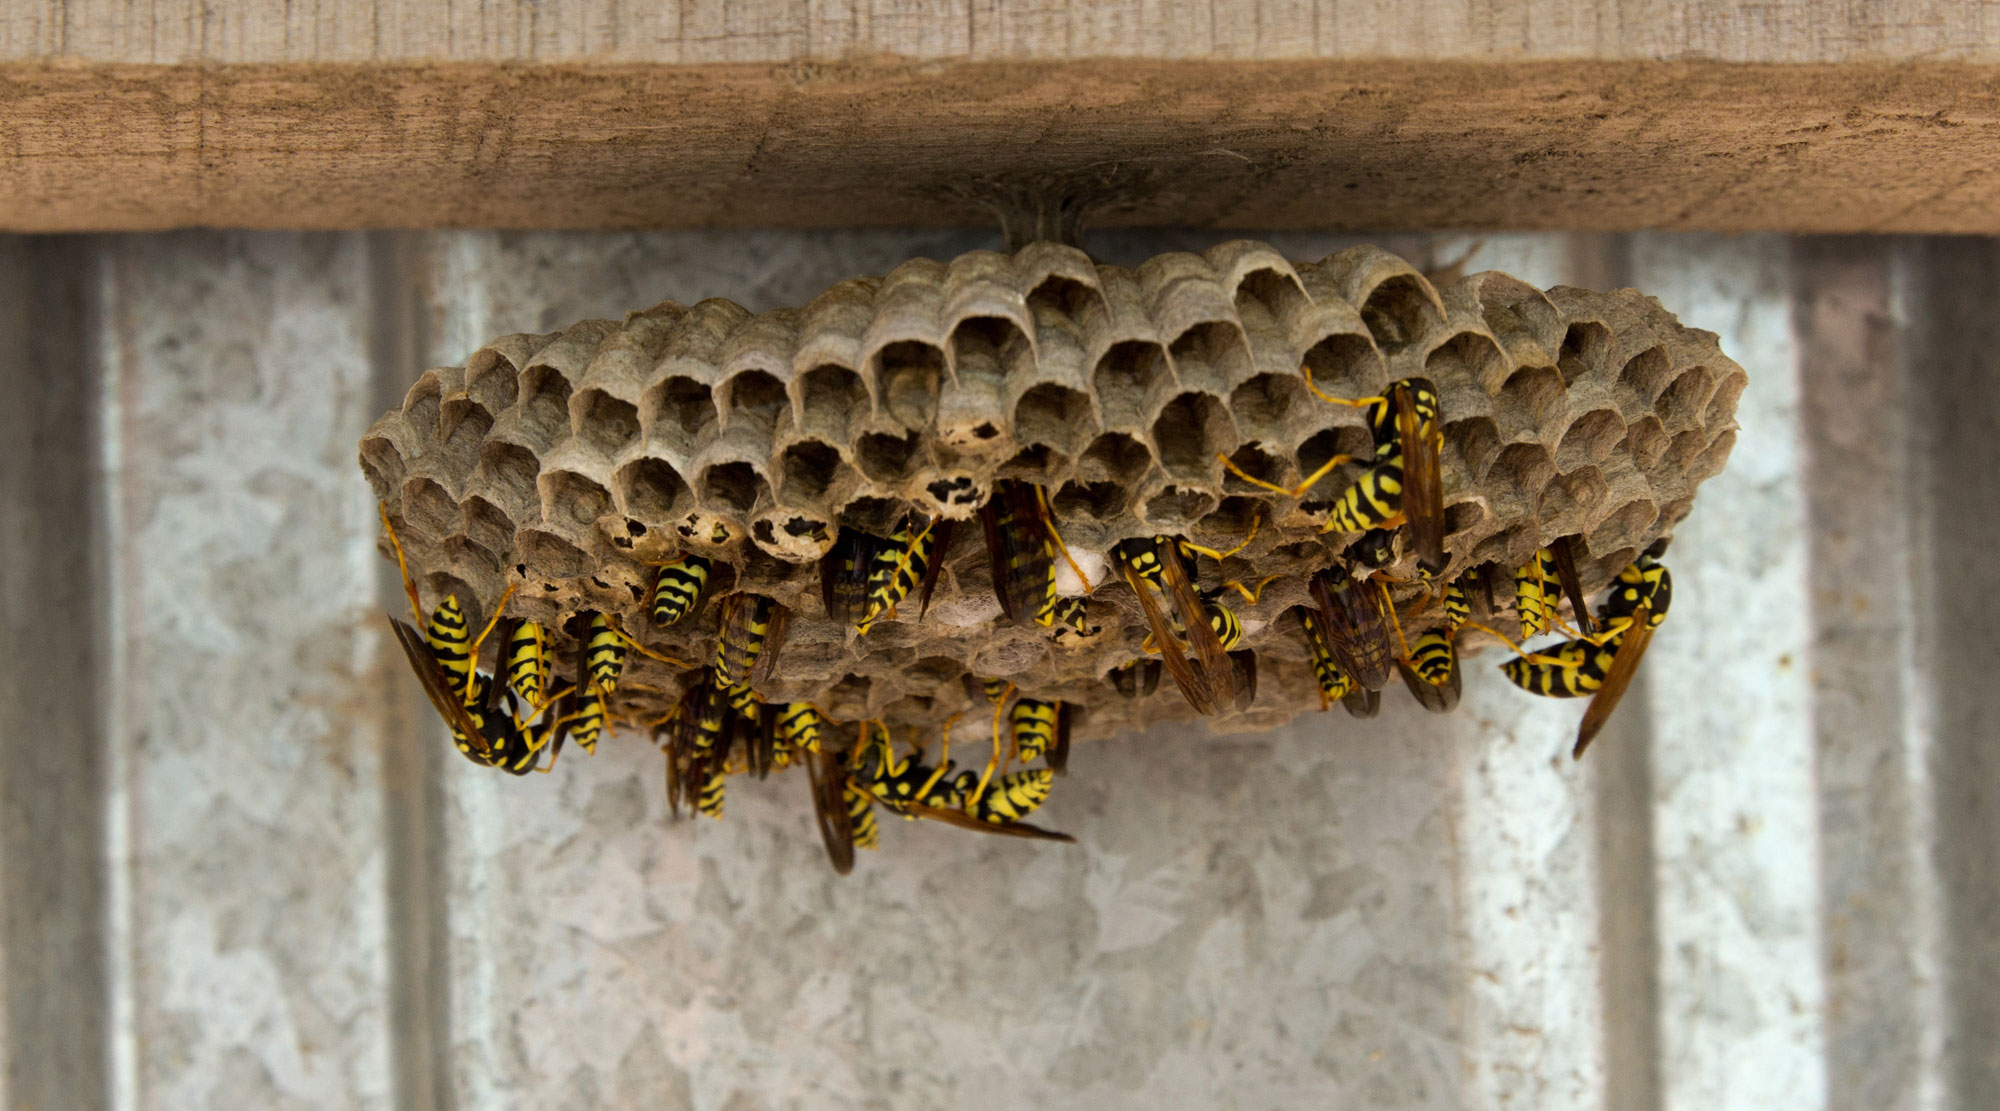 Bees in a nest